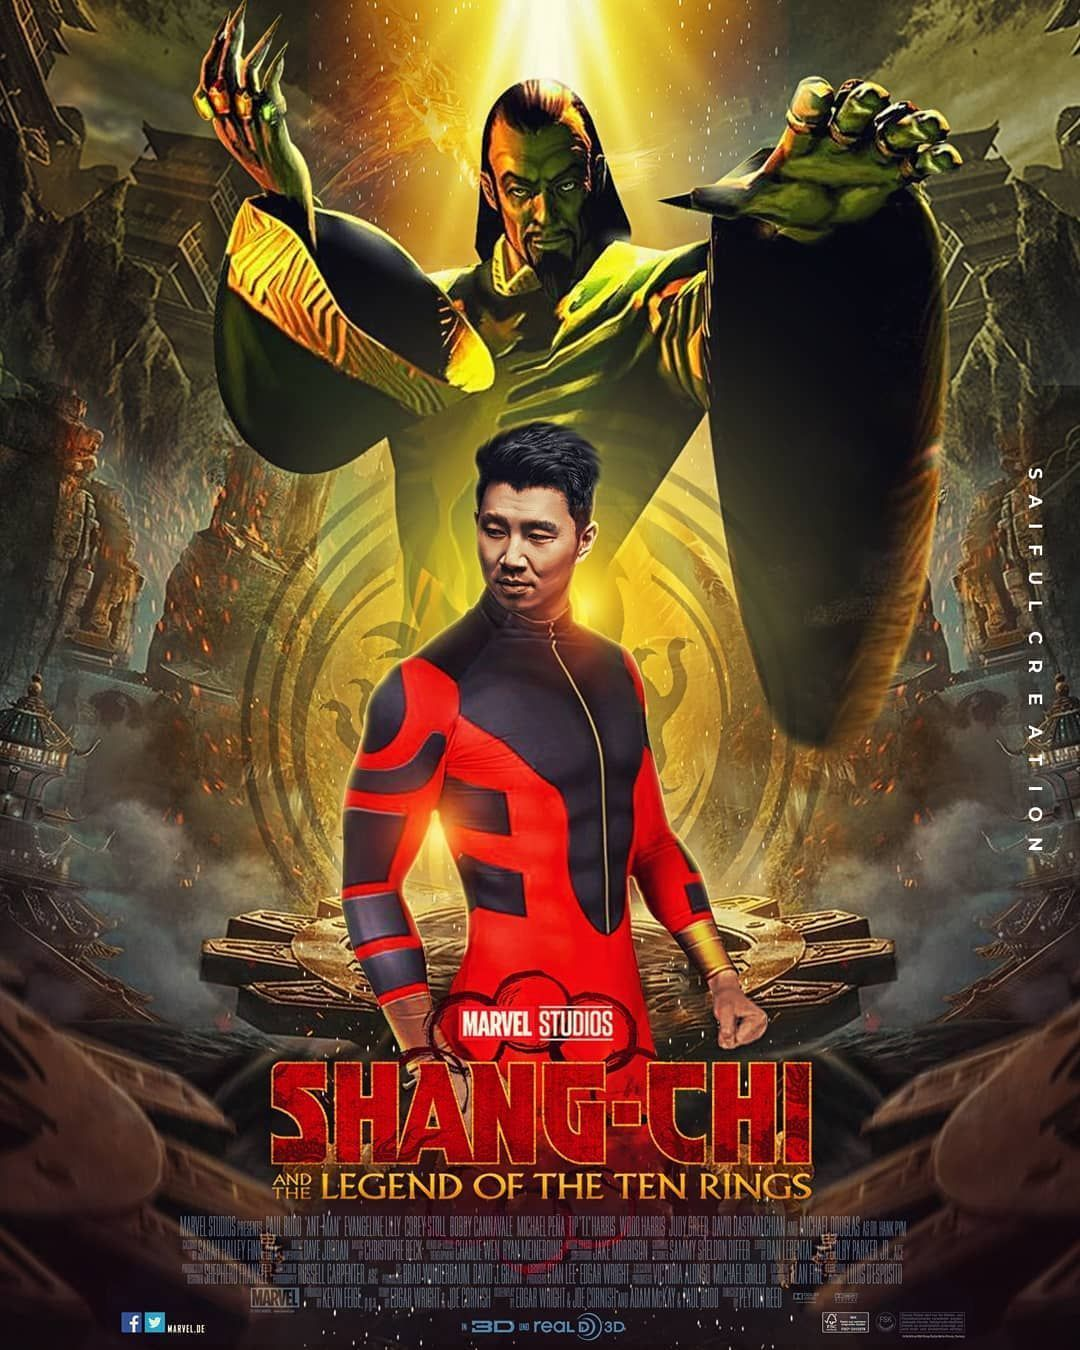 Shang Chi And The Legend Of The Ten Rings Wallpapers Top Free Shang Chi And The Legend Of The Ten Rings Backgrounds Wallpaperaccess